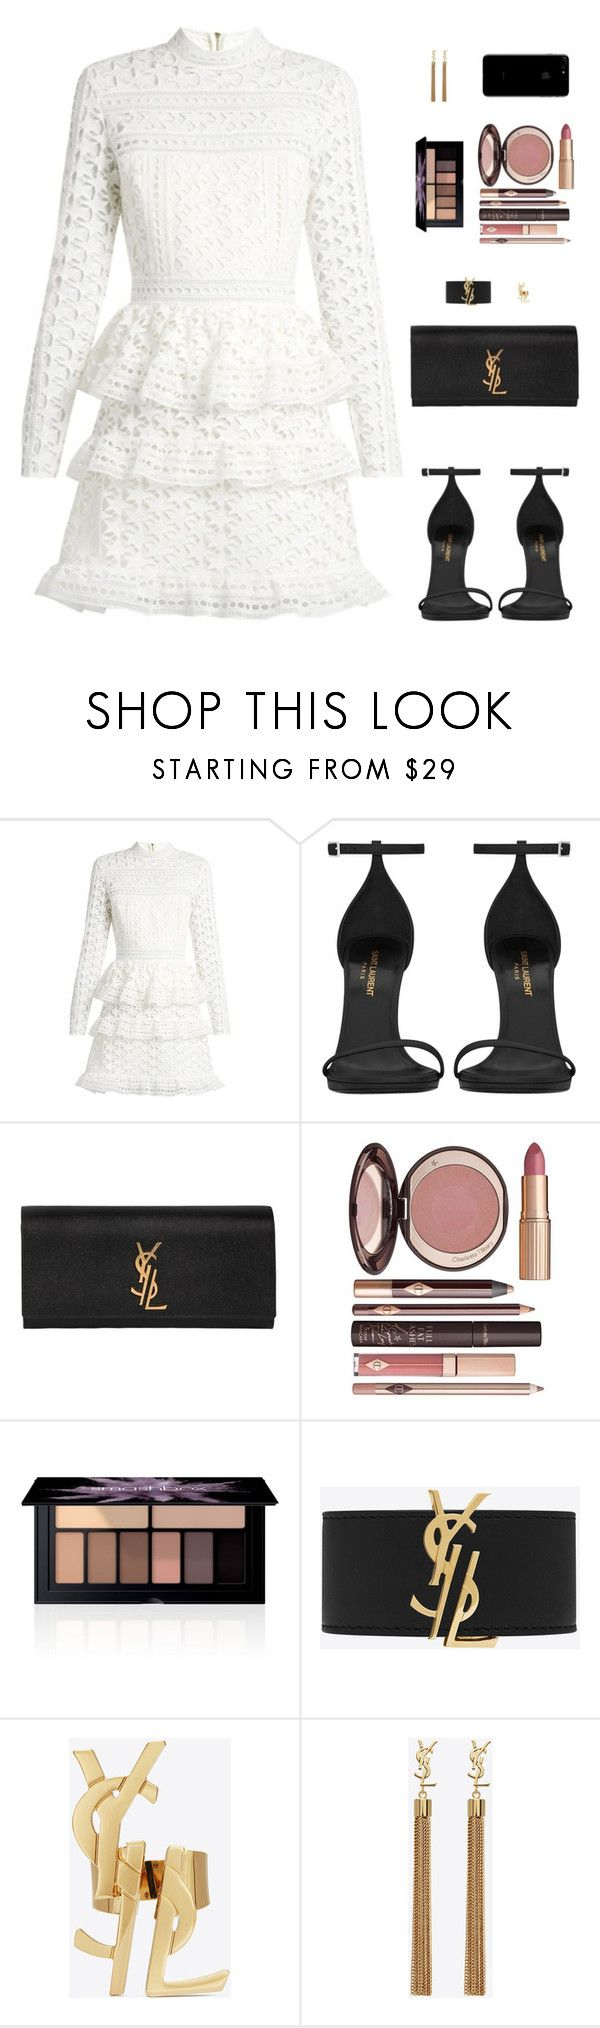 """Sin título #4694"" by mdmsb on Polyvore featuring moda, self-portrait, Yves Saint Laurent, Charlotte Tilbury y Smashbox"